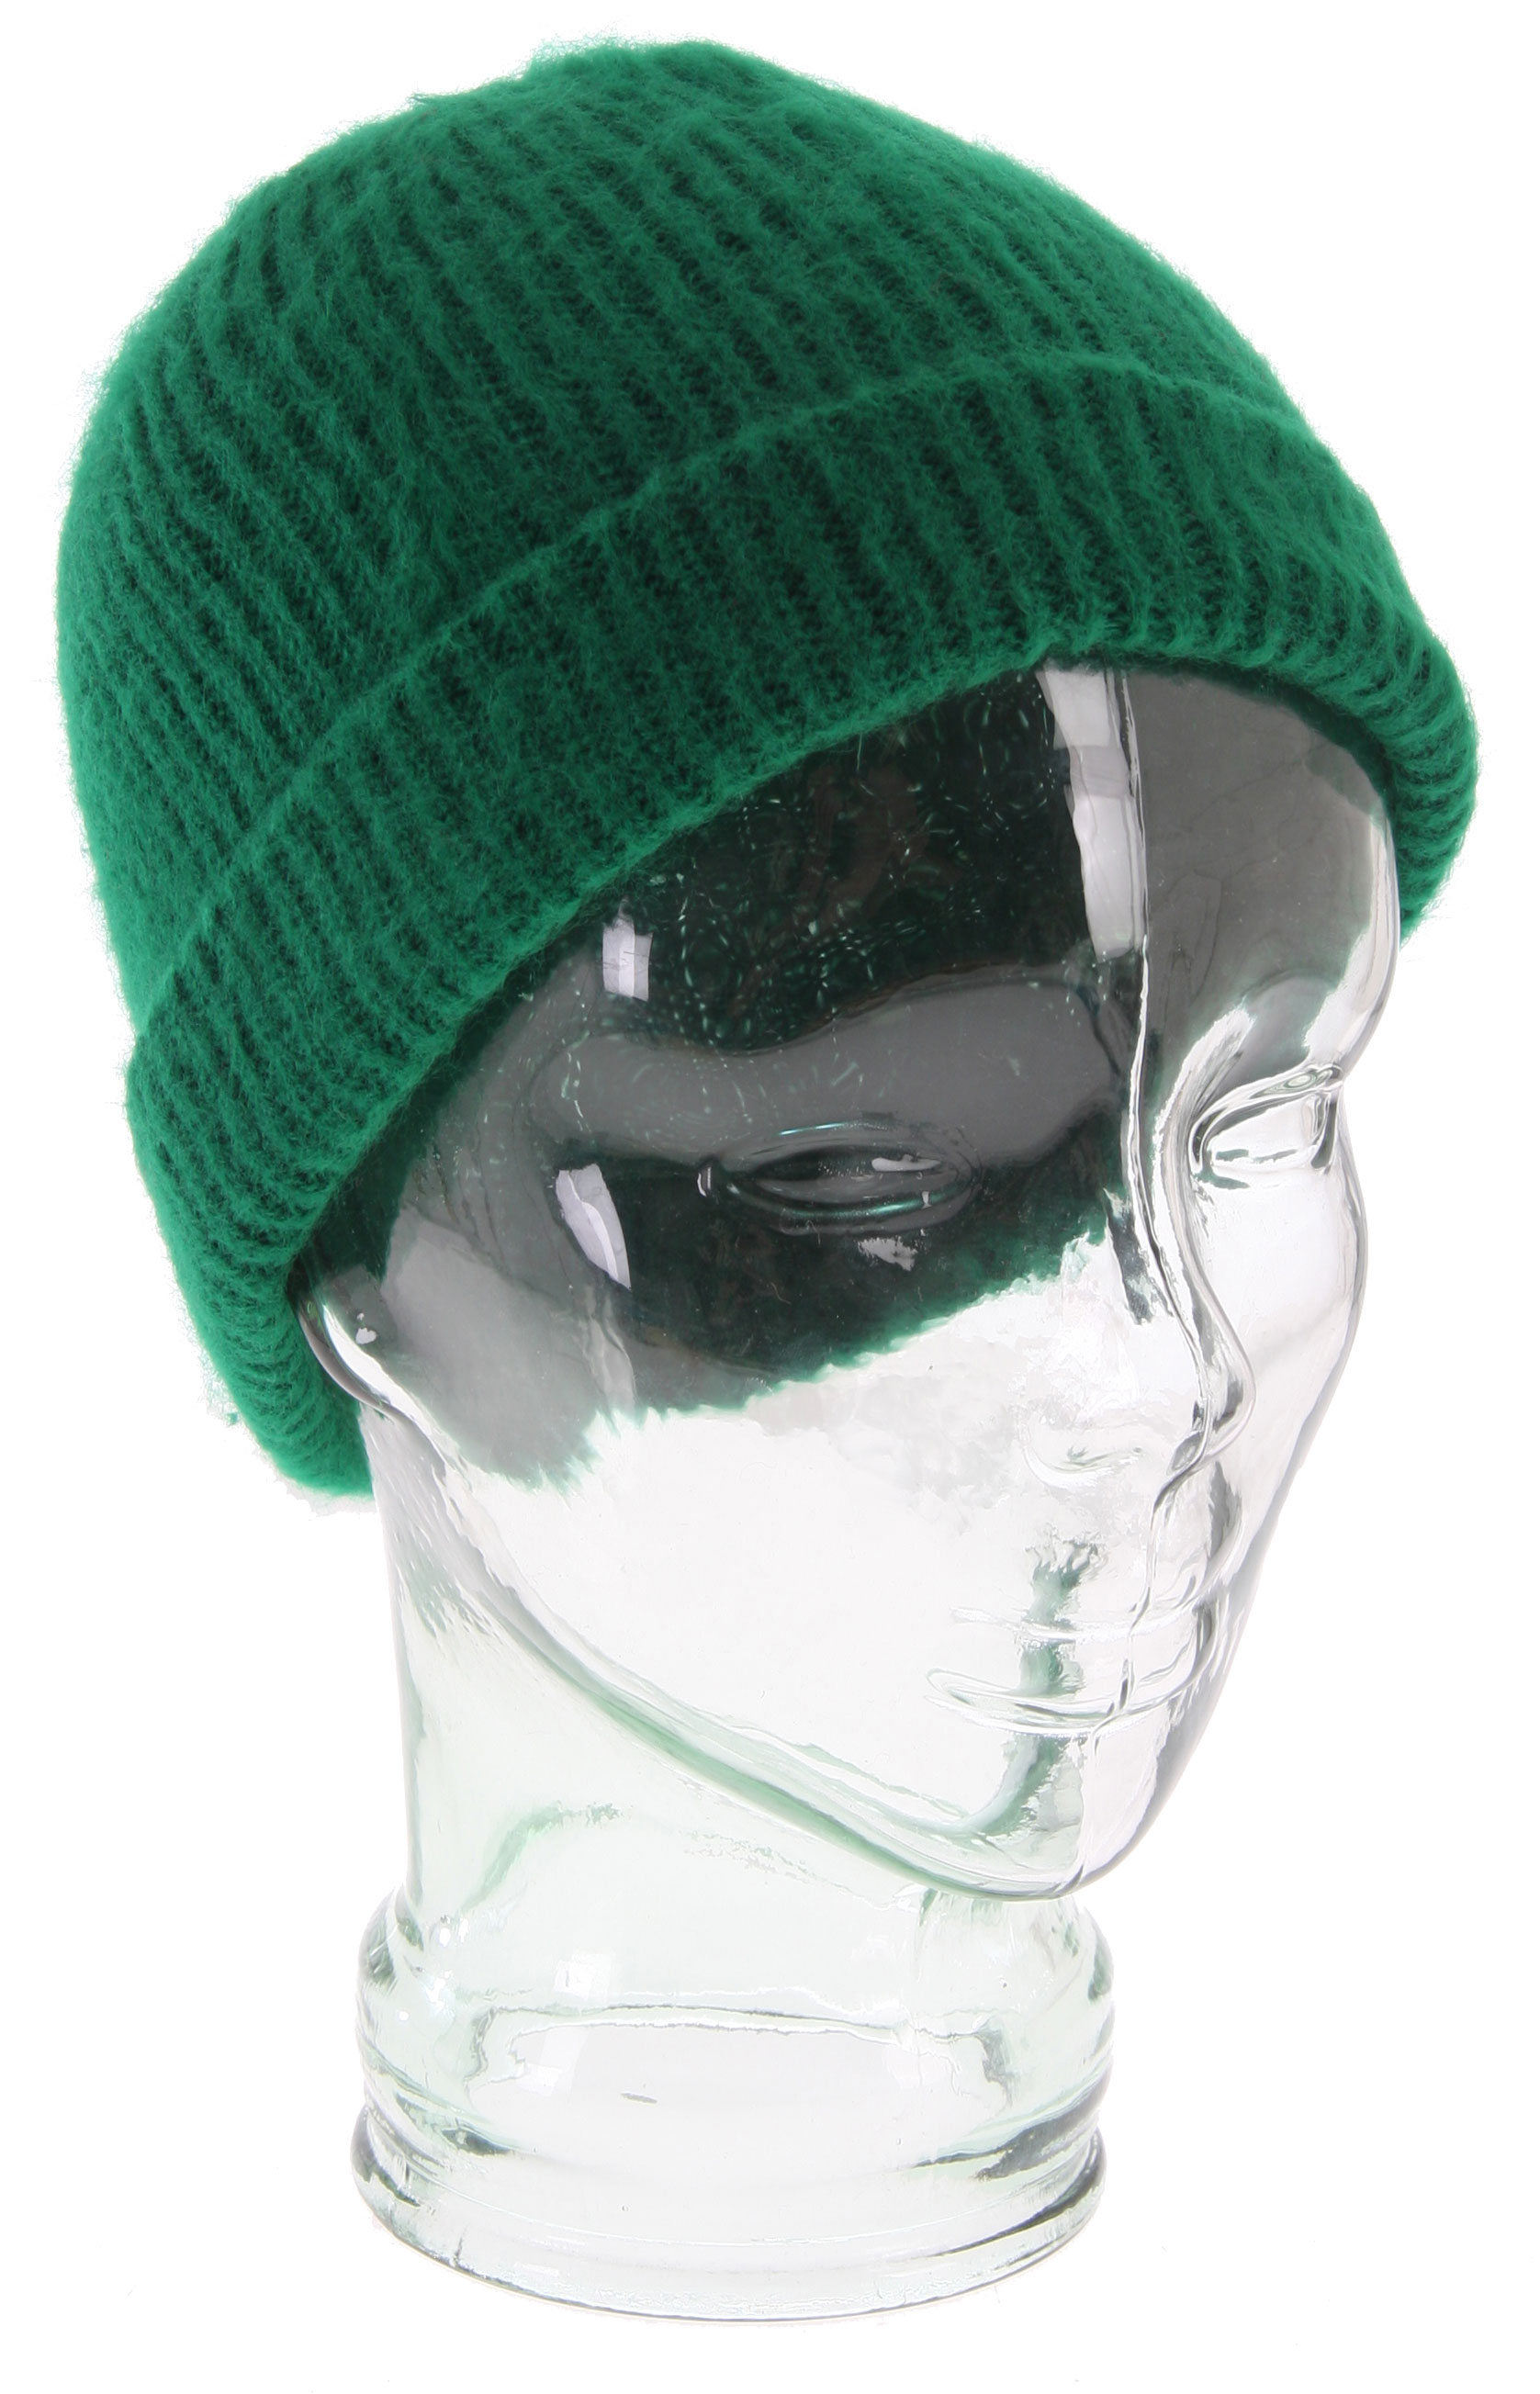 Key Features of the Coal Coyle Beanie: The same proprietary distressing we invented with the Scotty beanie only with a shallower fit that is perfect for the classic cuffed style. Finely-distressed Acrylic. - $16.95